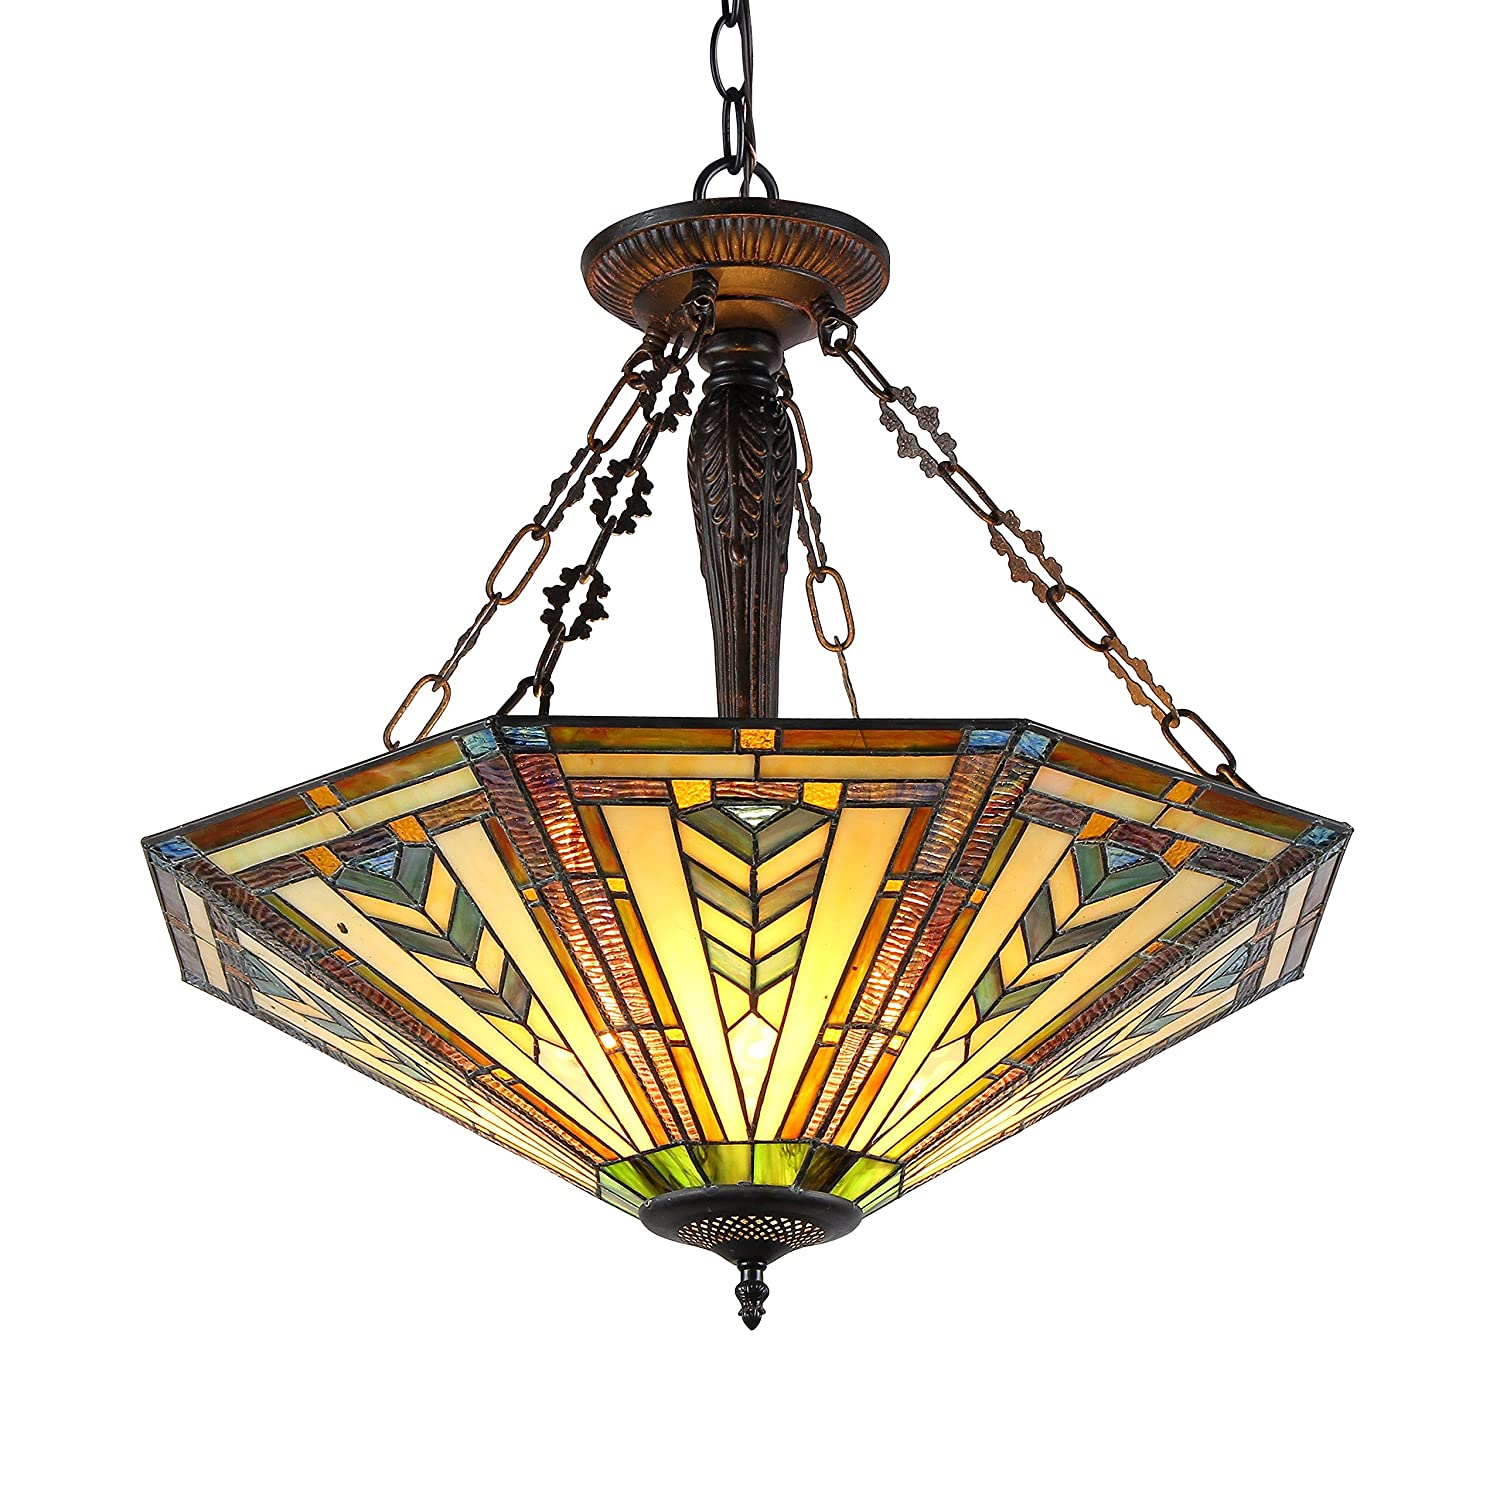 Chloe lighting ch36321gm25 uh3 harrison inverted ceiling pendant